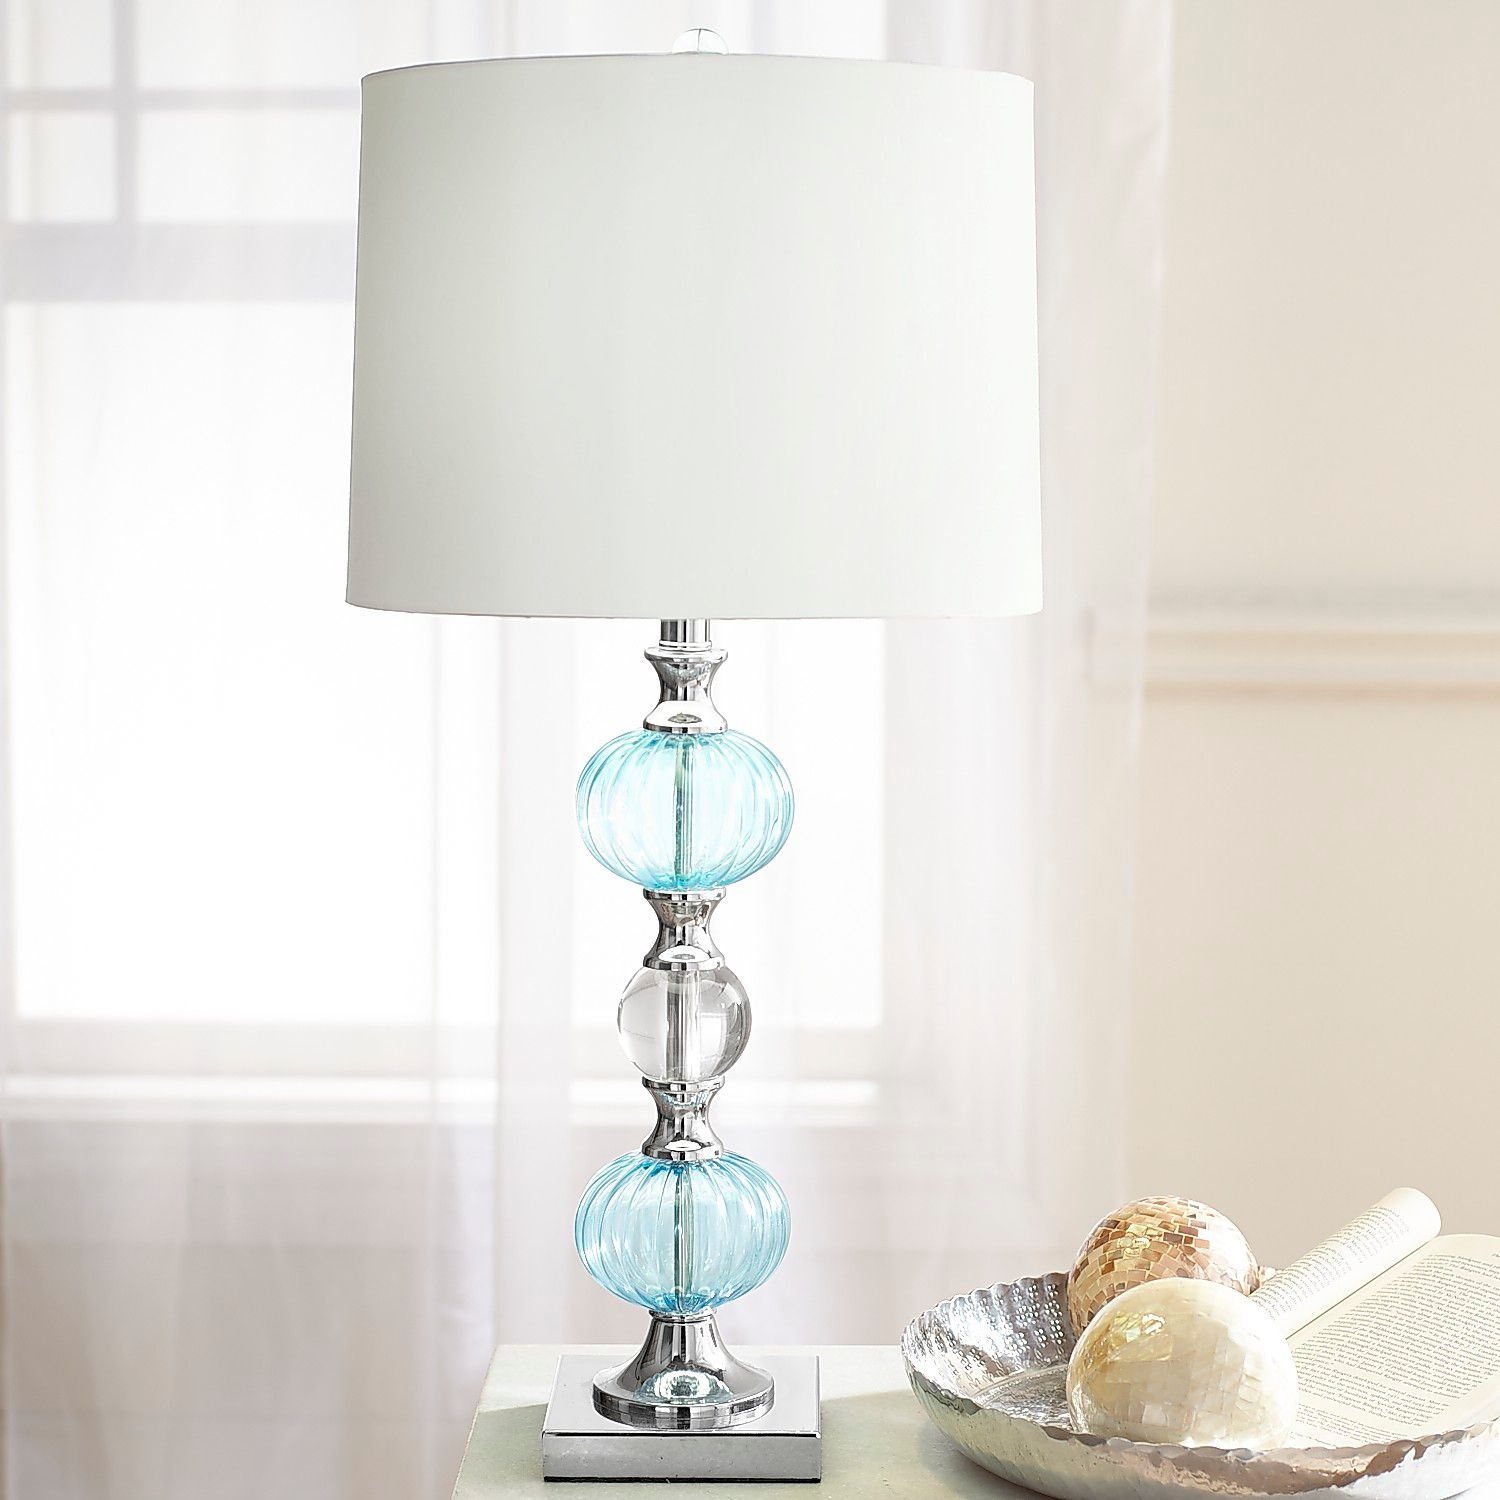 aqua glass table lamp pier imports one accent lamps garden umbrella drop leaf with folding chair storage cream modern dining room sets decor design pottery barn six chairs